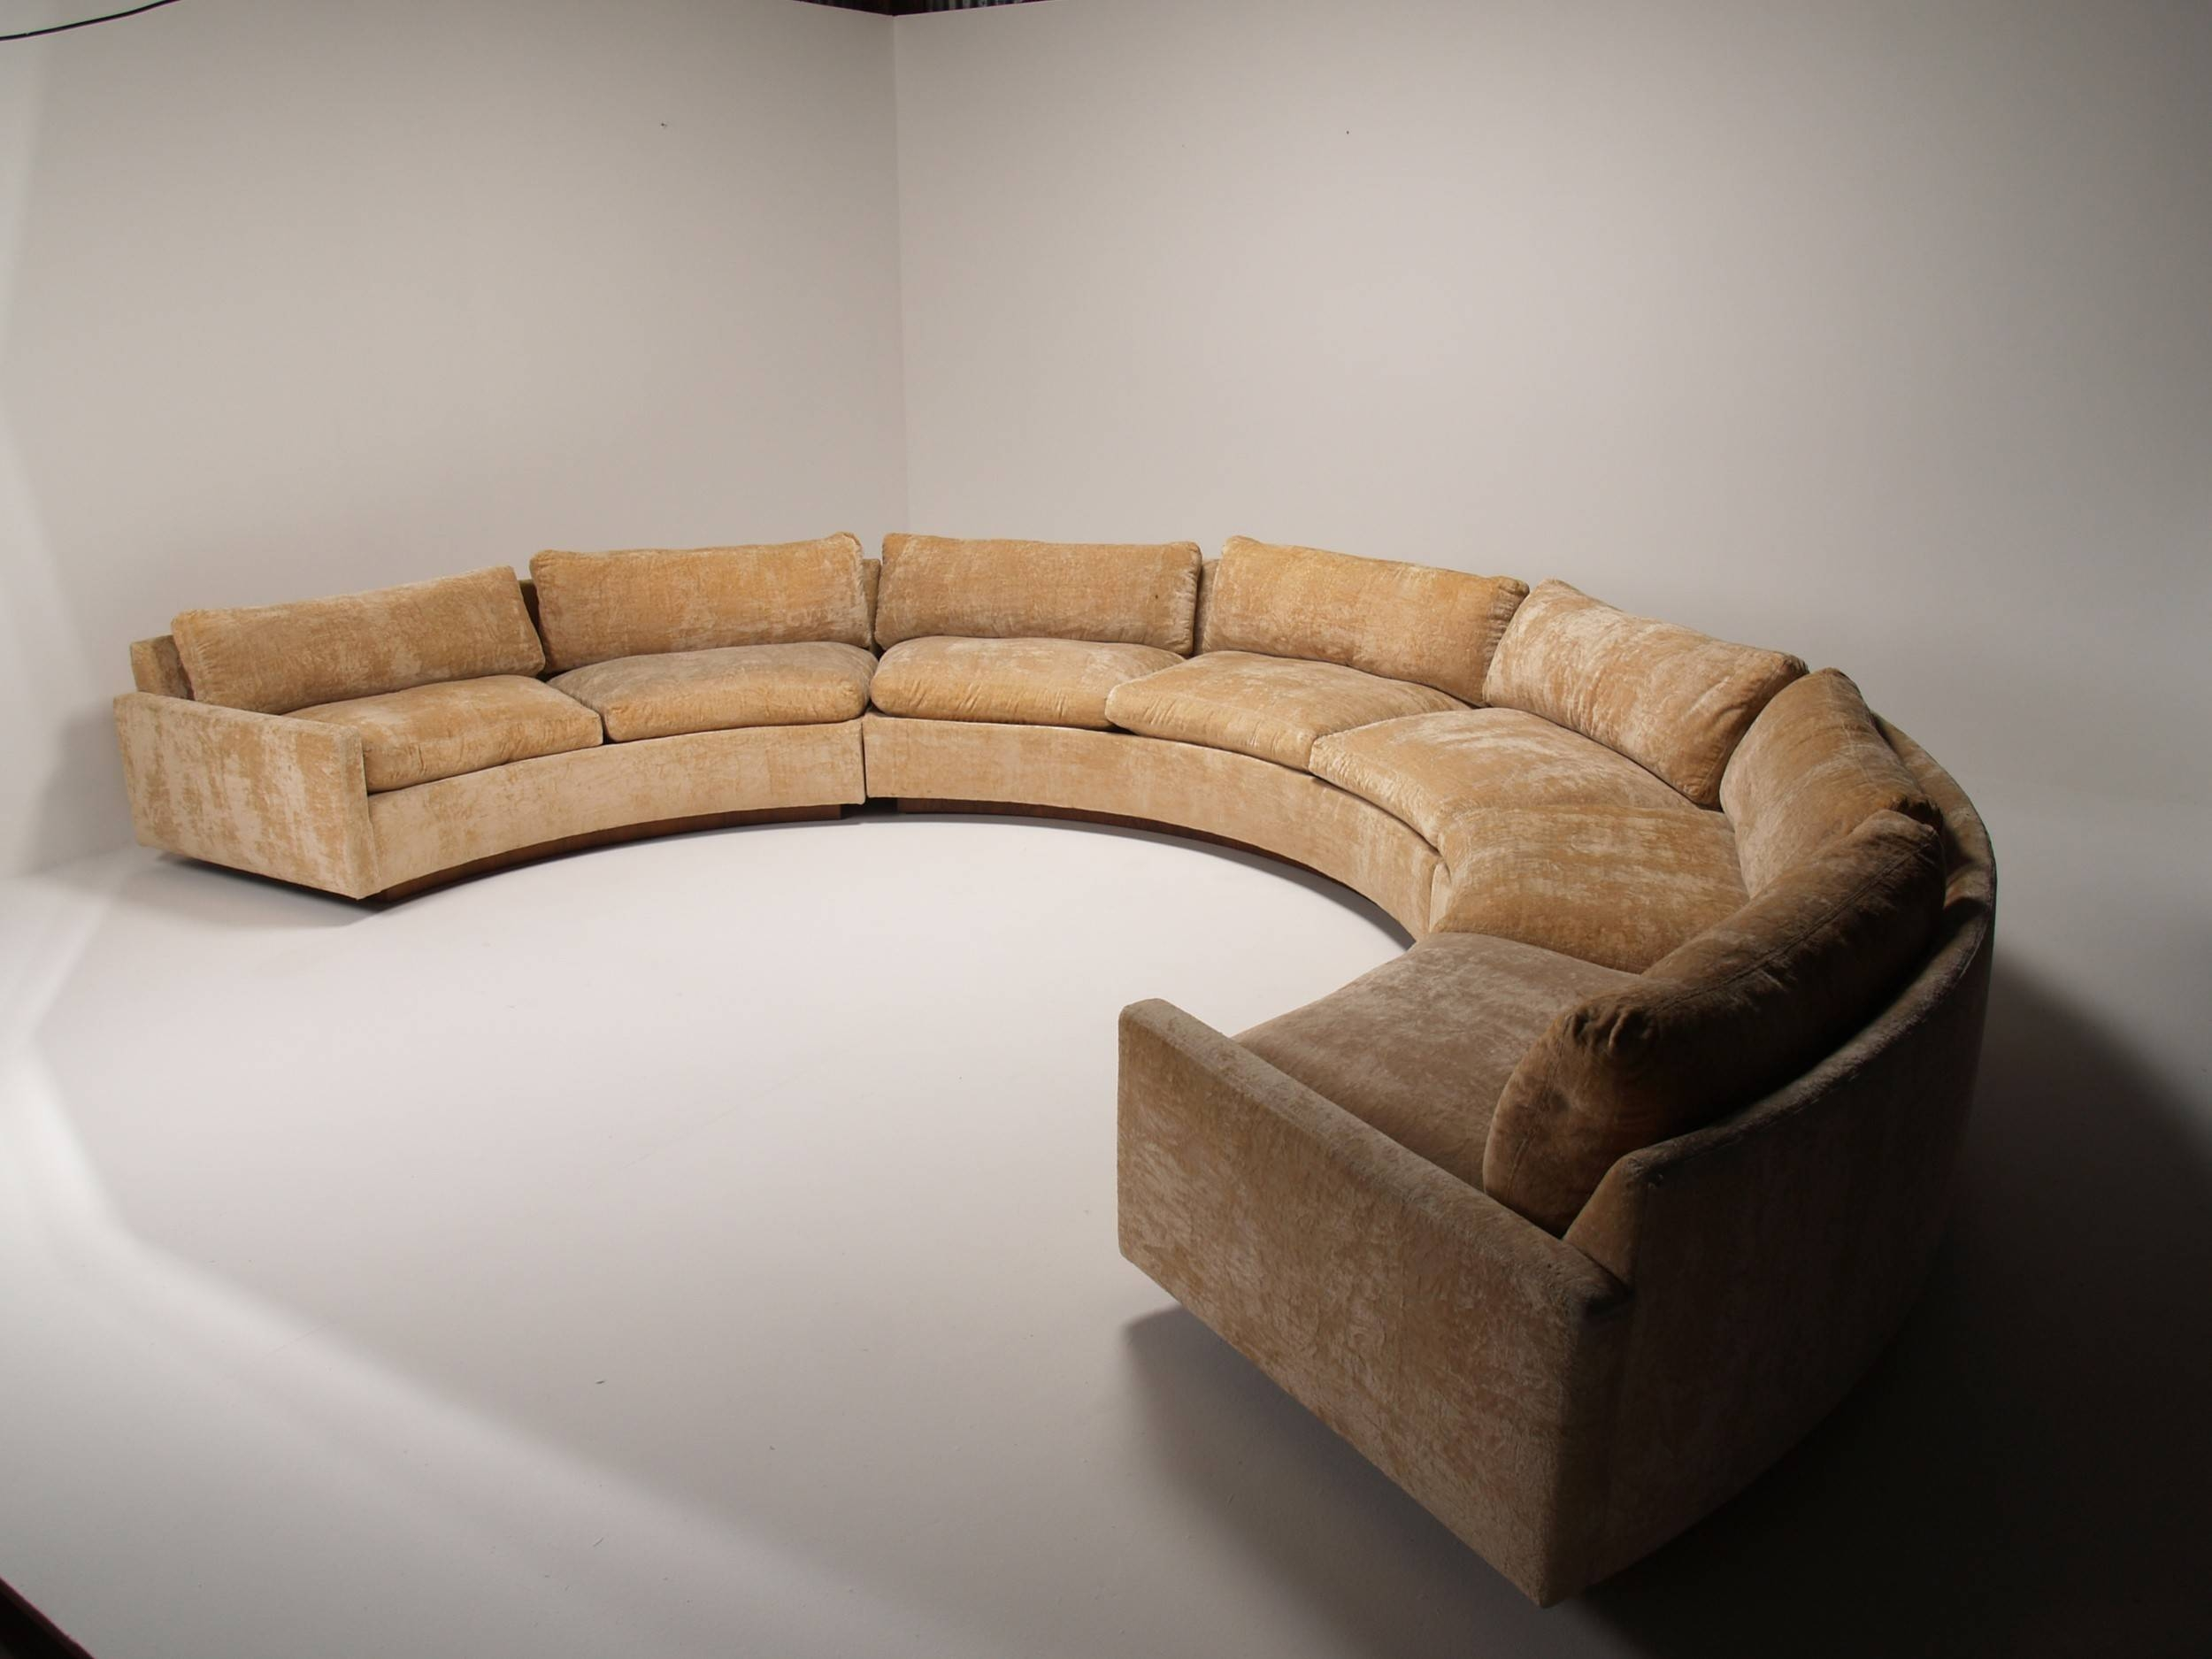 Round Sofas, Style Roundup Decorating With Round Sofas And Couches for Semi Round Sectional Sofas (Image 11 of 15)